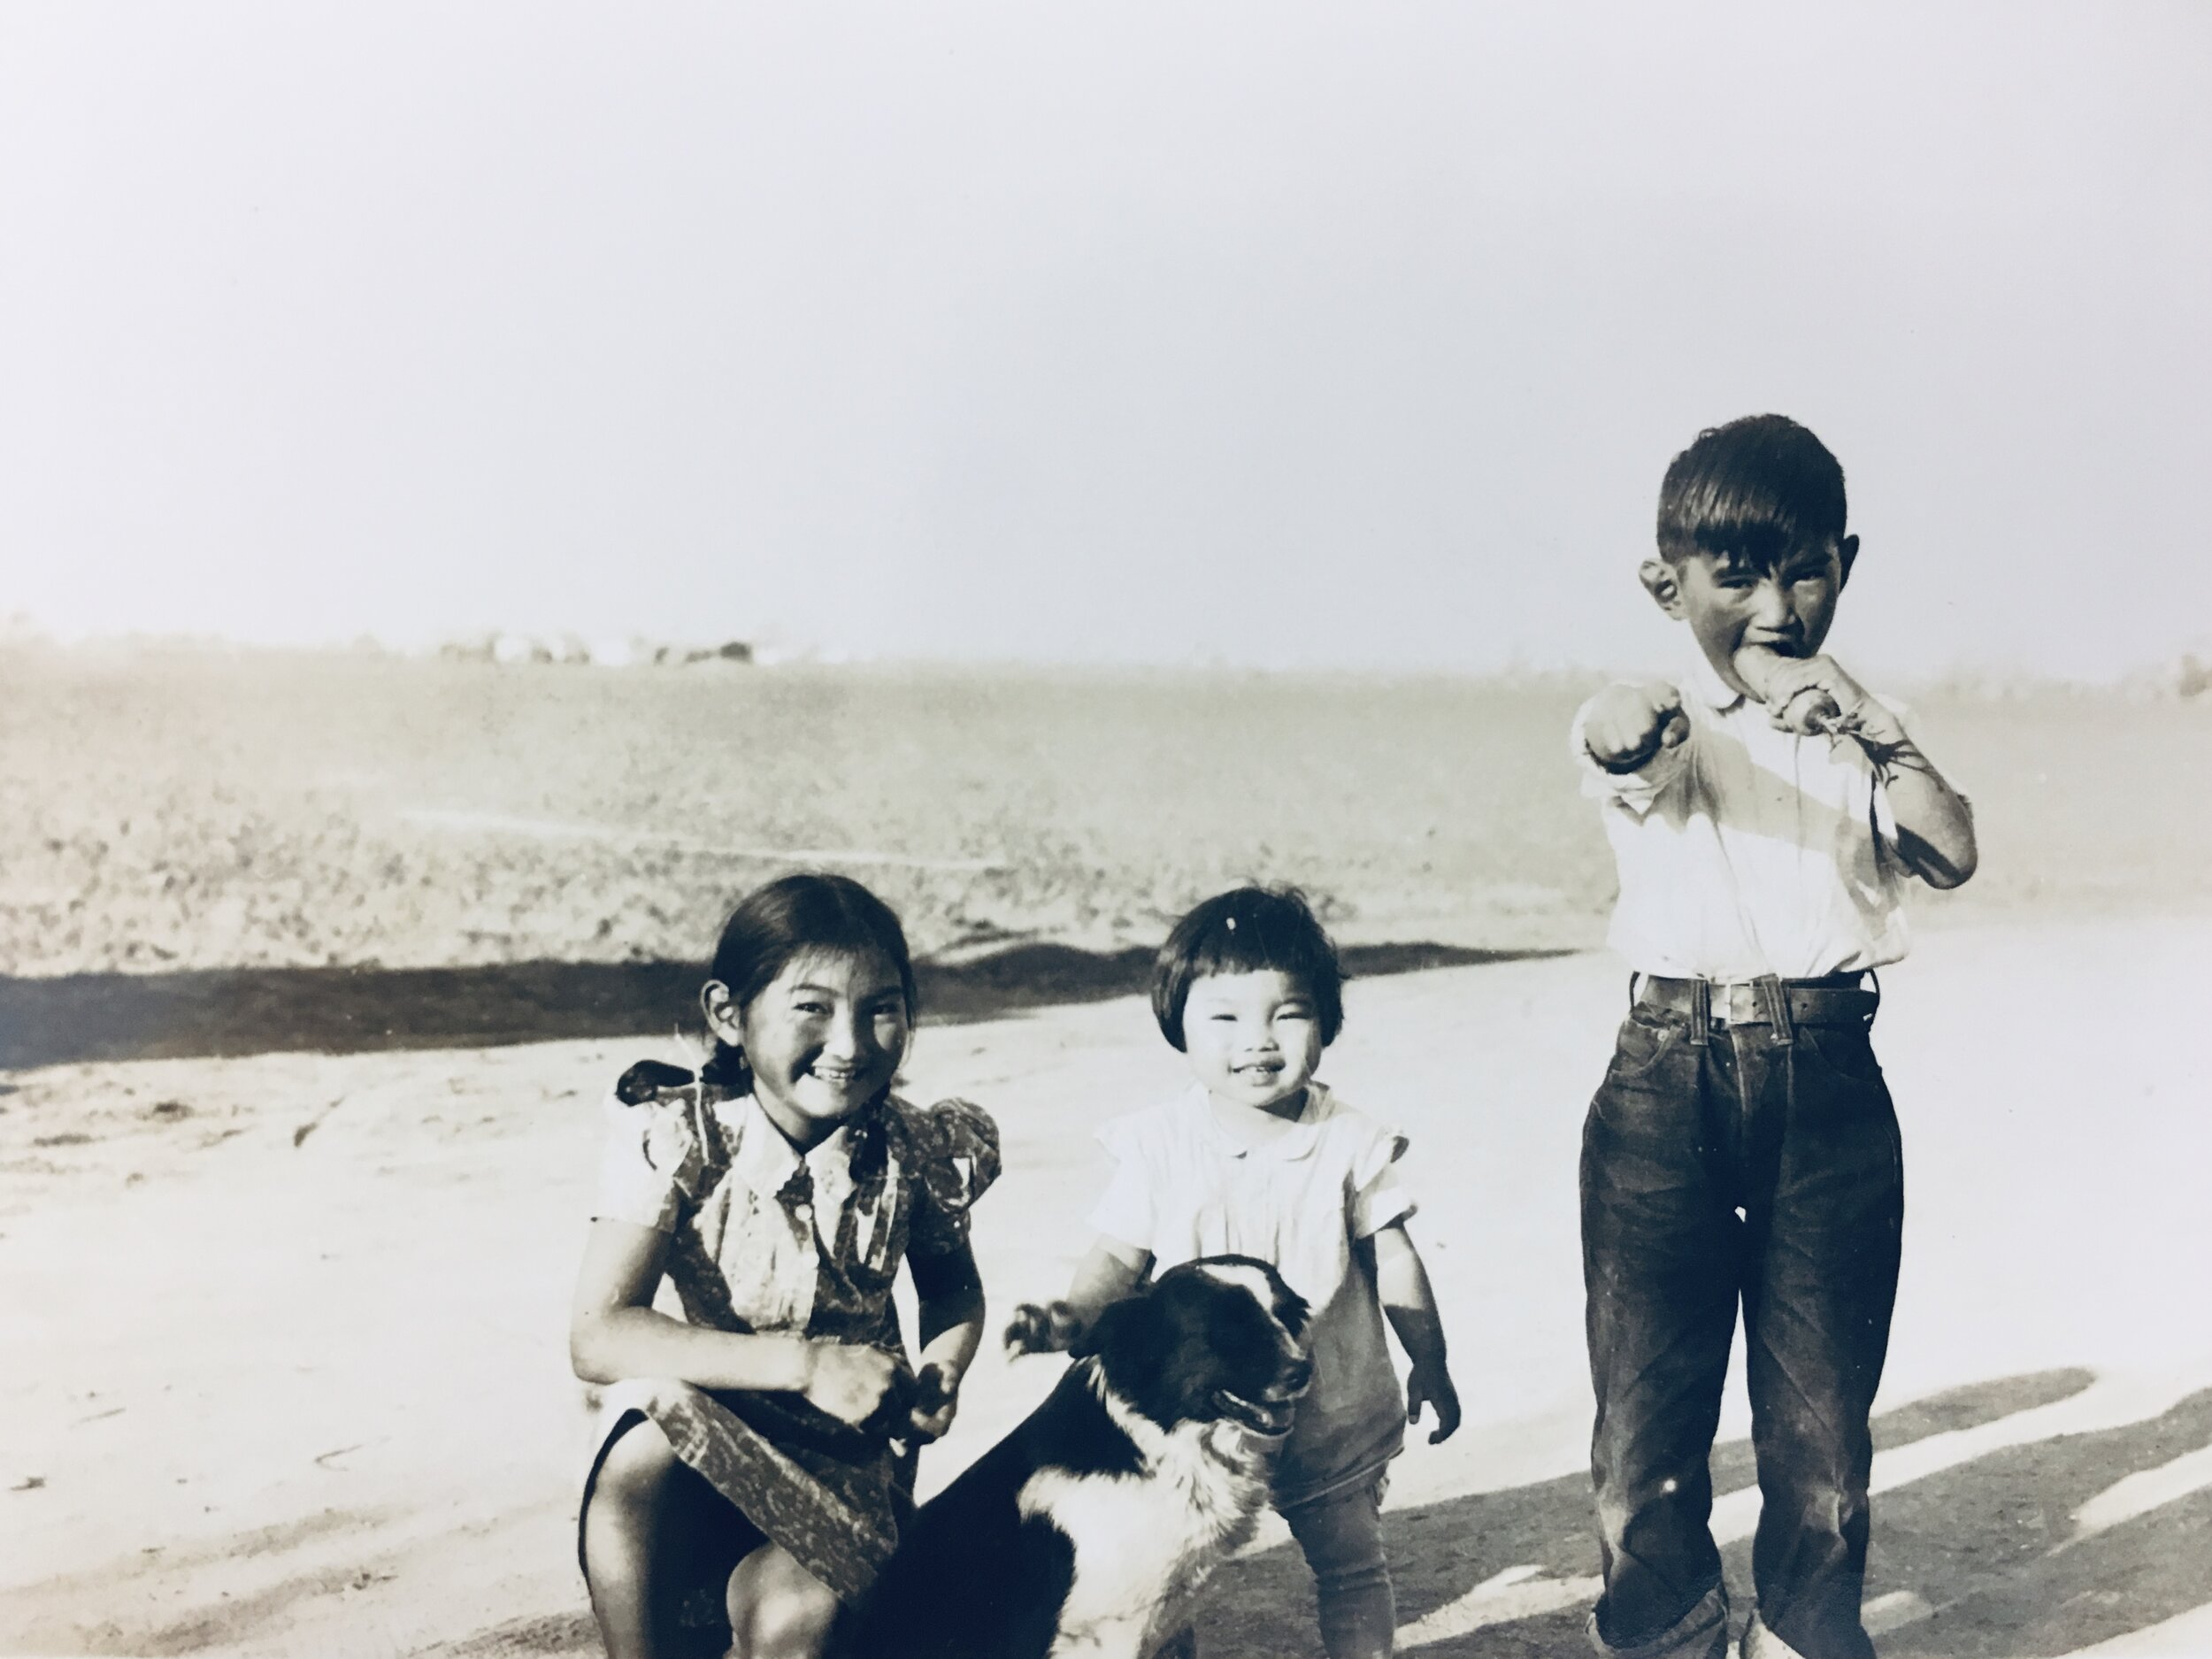 Rose, Hisako, and Roy, likely taken in 1941 in Salinas right before the family left for Japan.